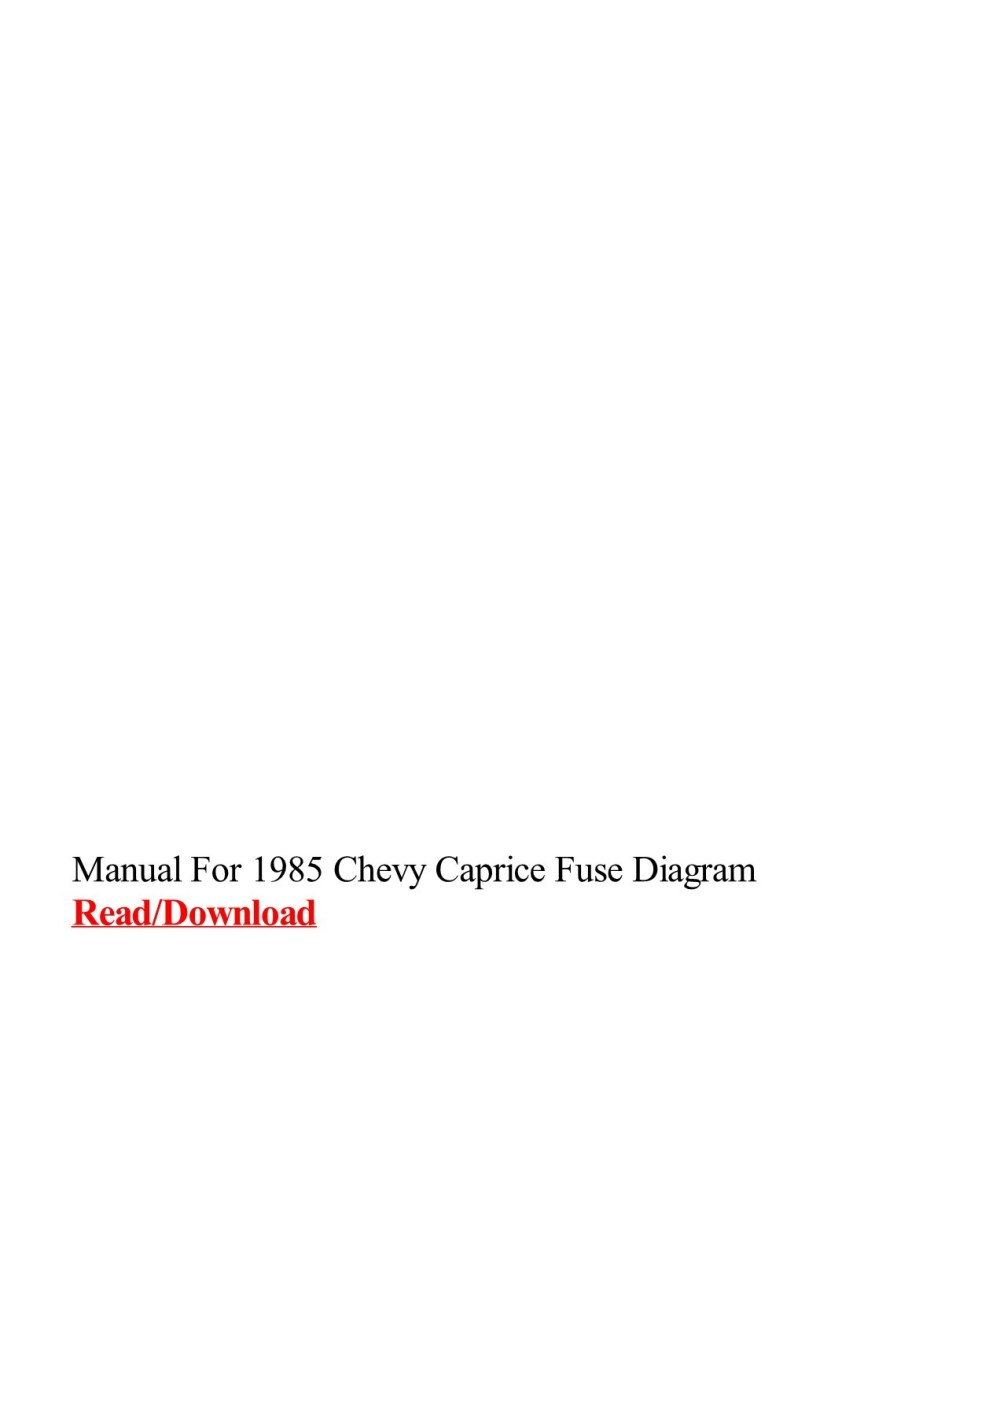 medium resolution of manual for 1985 chevy caprice fuse diagram pages 1 3 text version fliphtml5